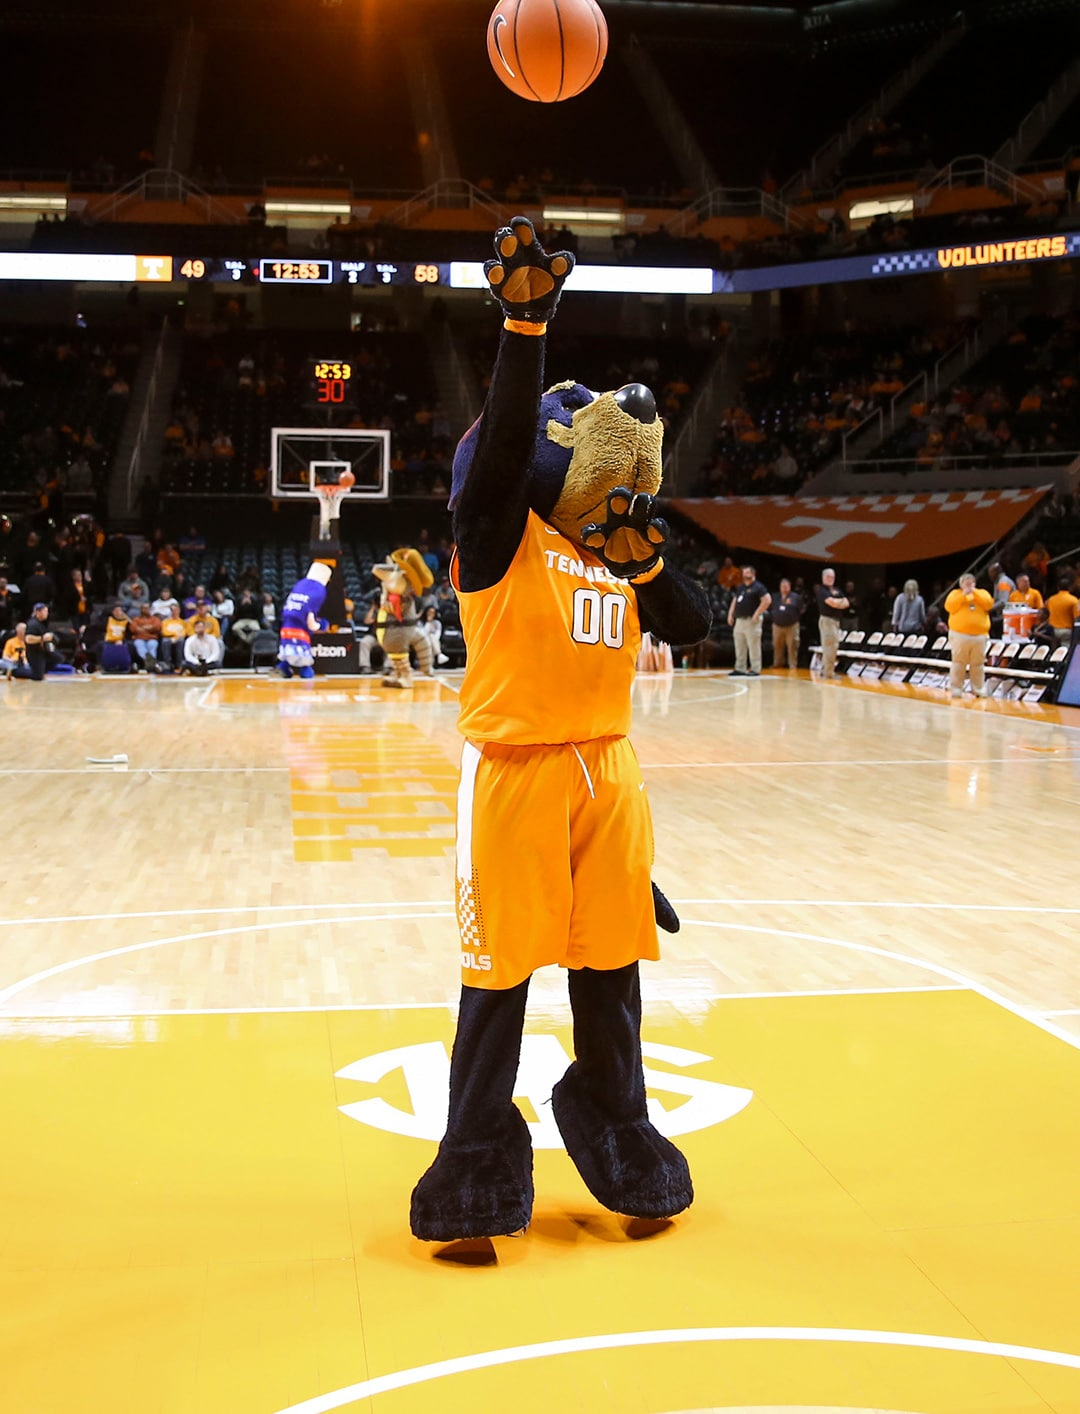 KNOXVILLE, TN - DECEMBER 15, 2016 -  Smokey Mascot during the game between the Lipscomb Bisons and the Tennessee Volunteers at Thompson-Boling Arena in Knoxville, TN. Photo By Hayley Pennesi/Tennessee Athletics